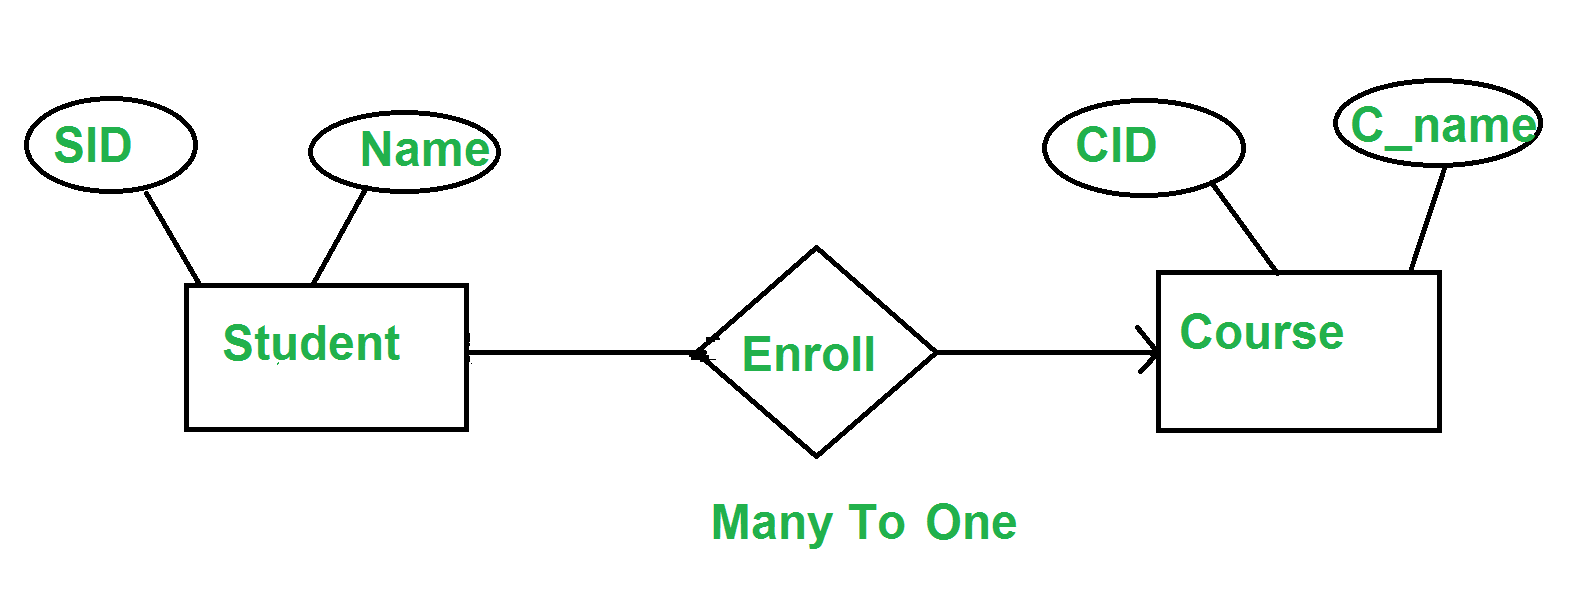 How To Show One To One Relationship In Er Diagram